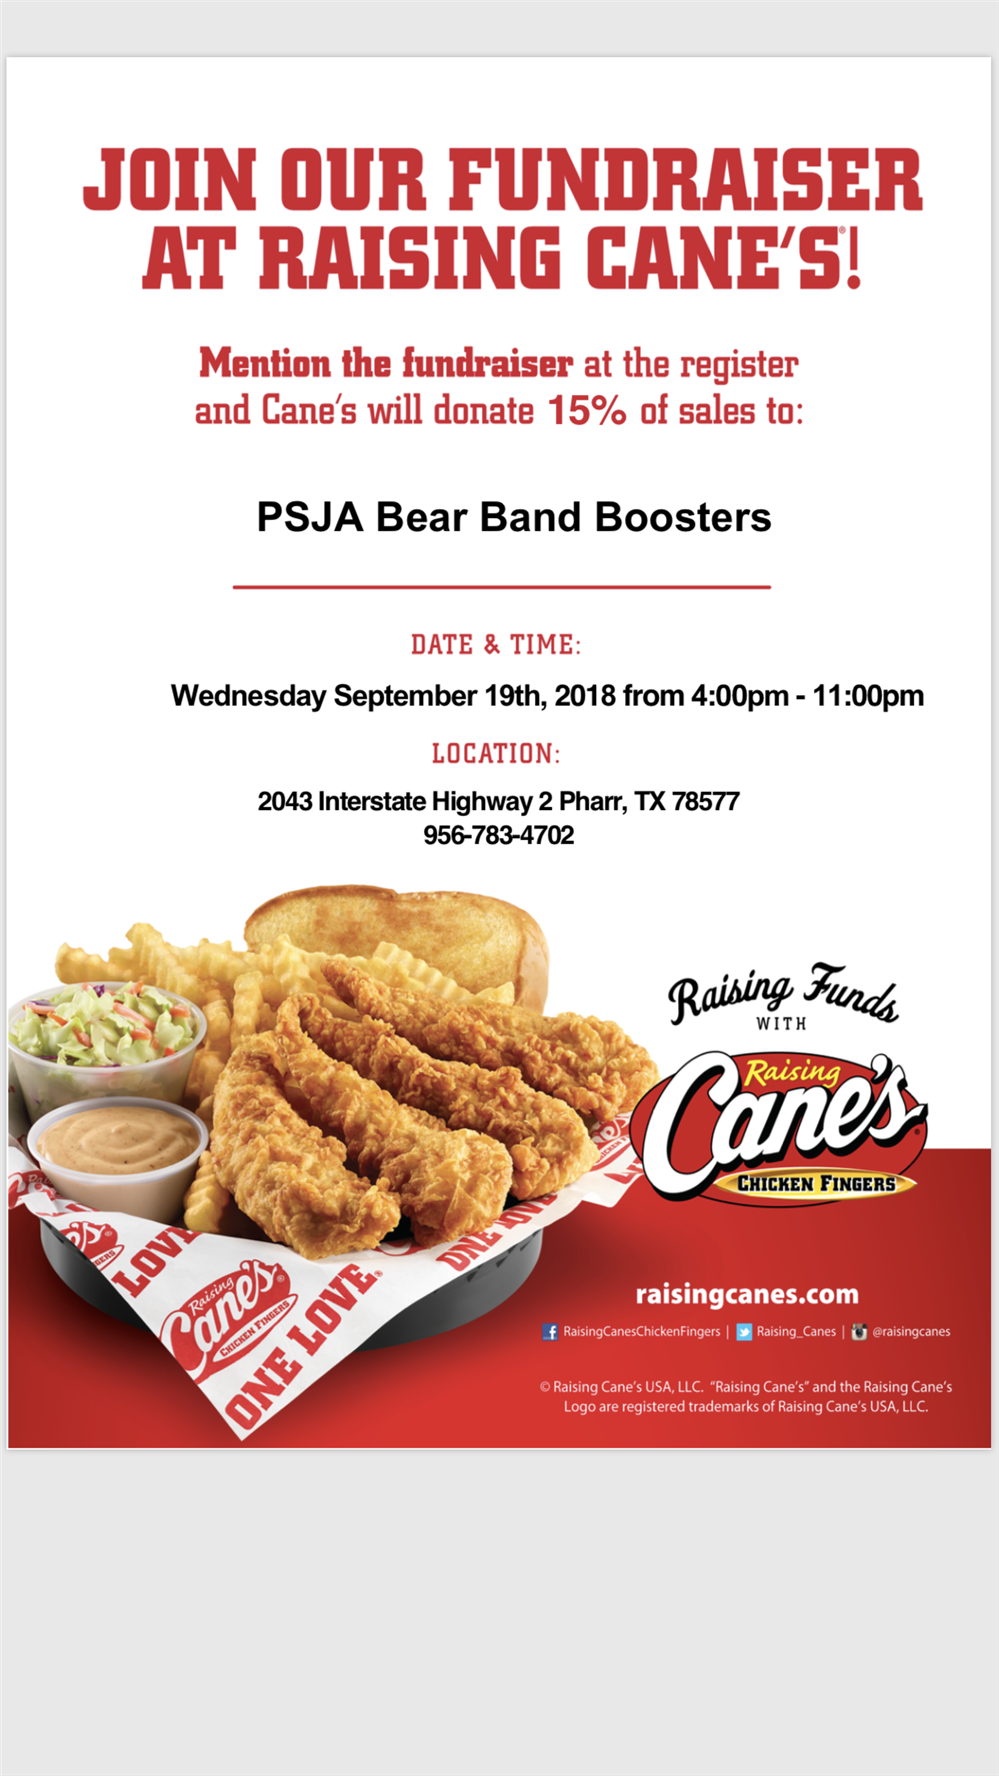 JOIN OUR FUNDRAISER AT RAISING CANE'S